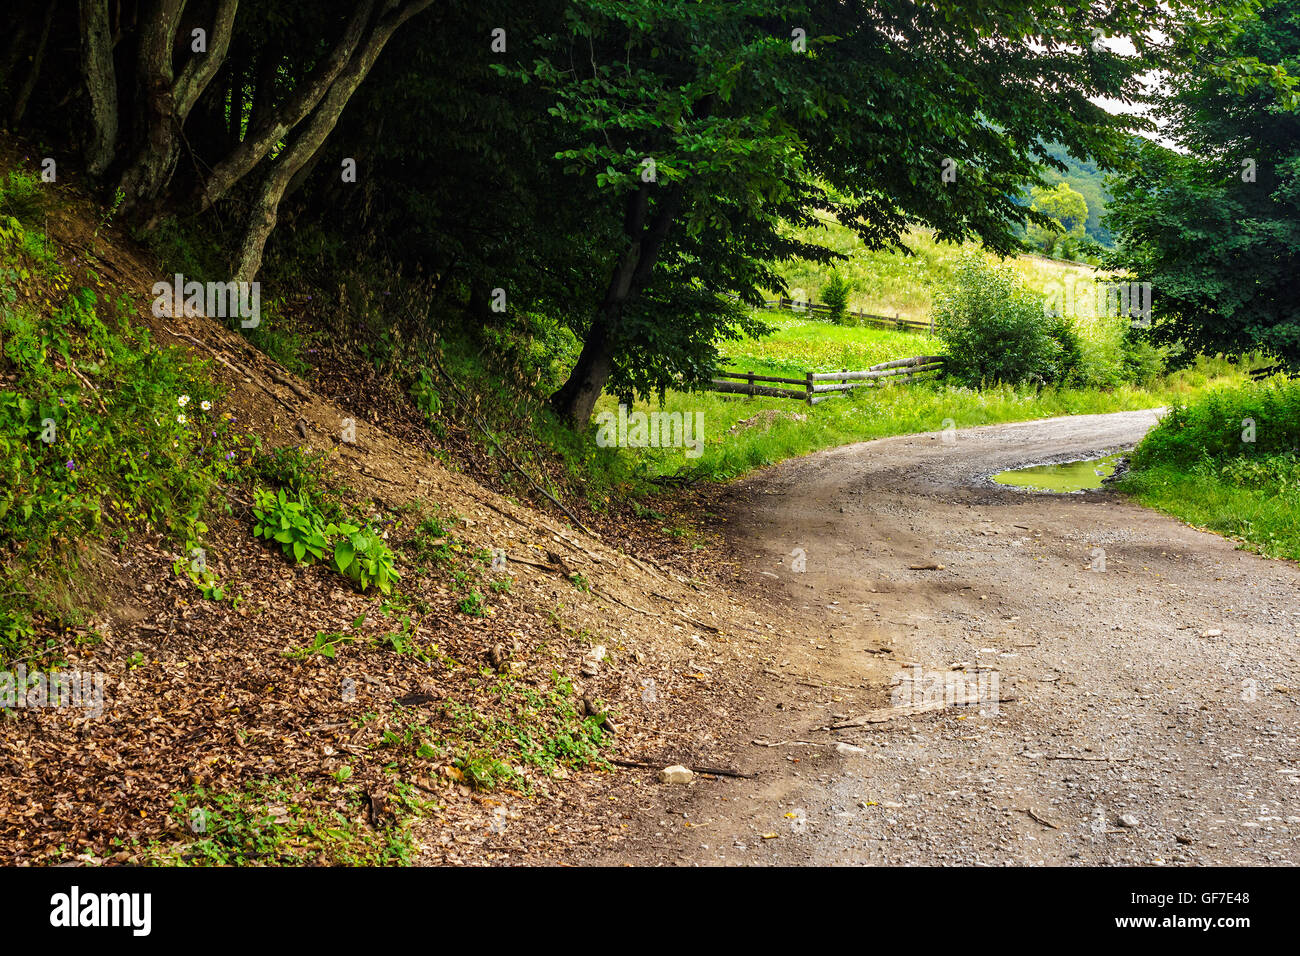 rural road through the forest to agricultural meadow eith wooden fence - Stock Image